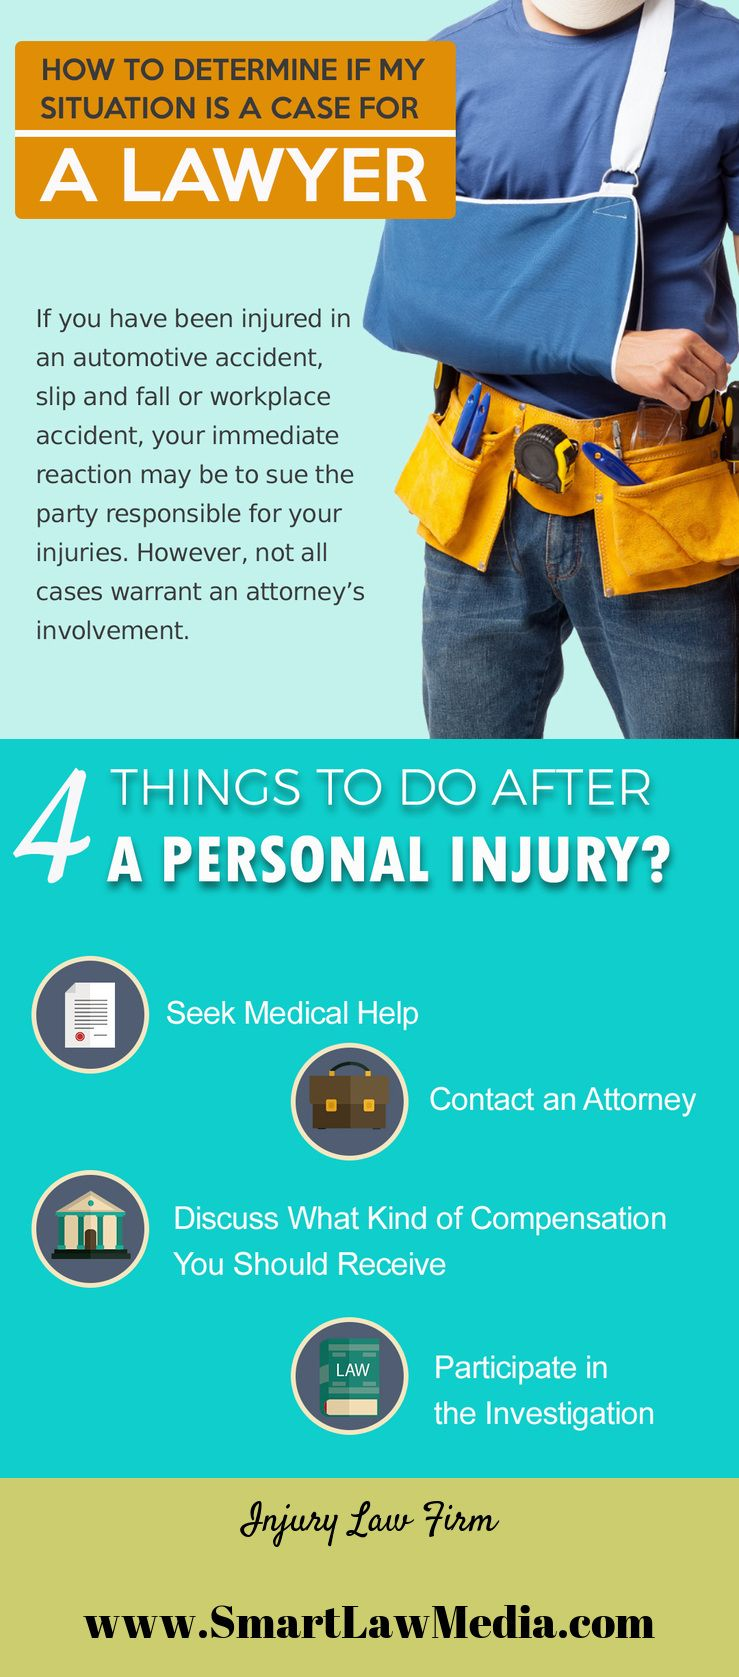 Attention Personal injury firms. Helping law firms to